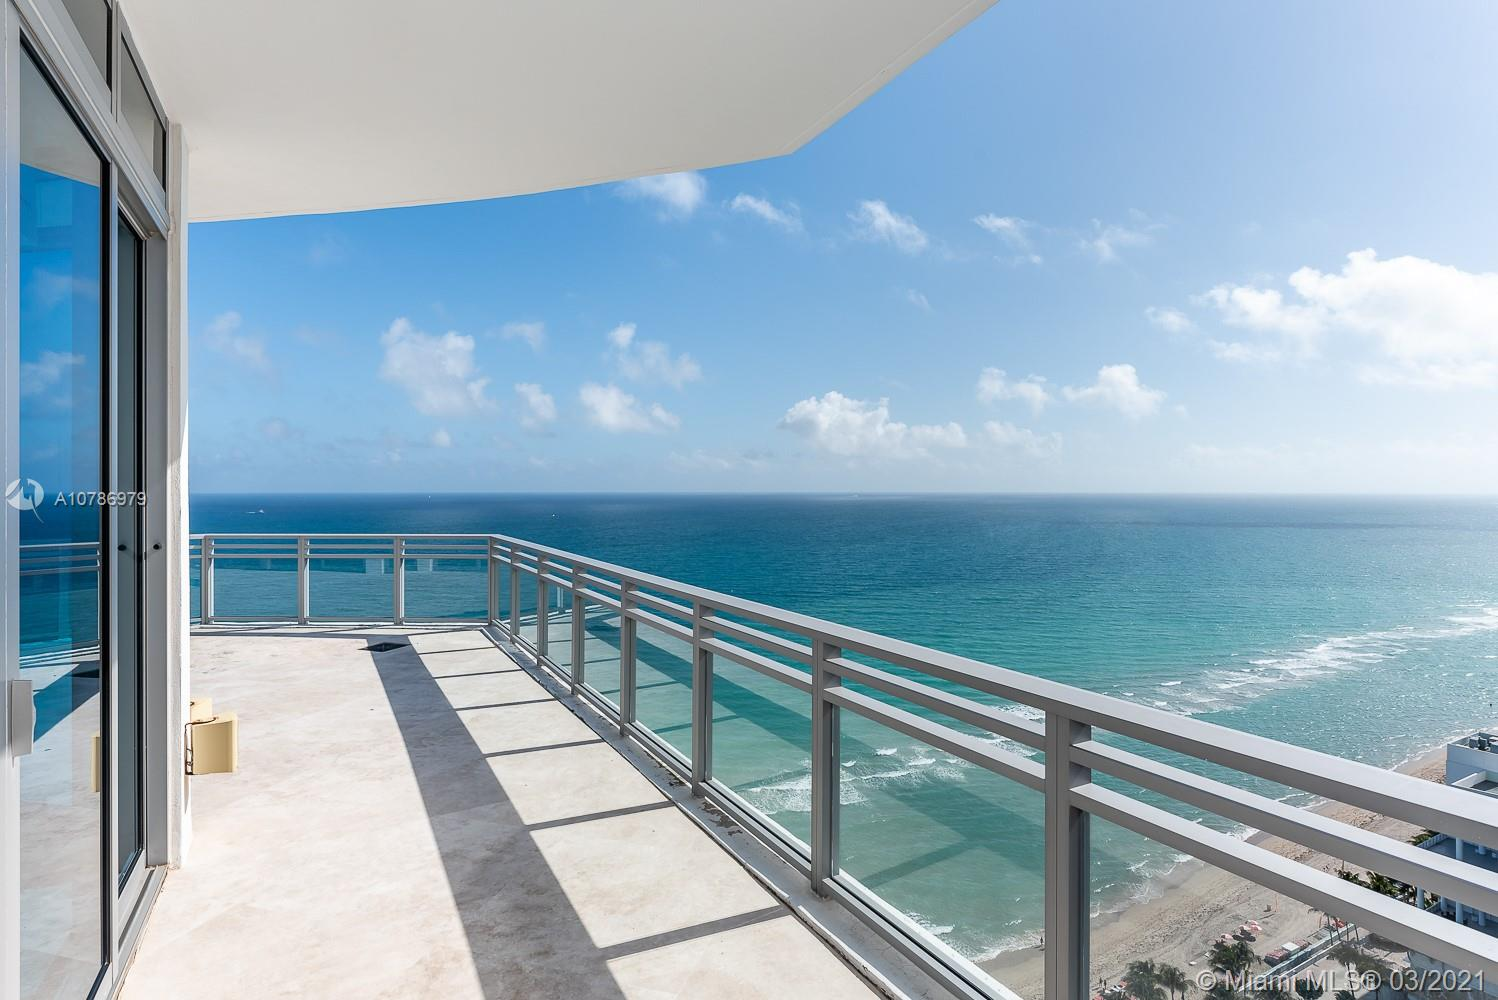 A sky-high penthouse on the Atlantic Ocean offering nearly 5,000-SF of interiors and +/-2,500-SF of wrap-around terraces that are a real dream for entertainers! Wake-up to panoramic views and sunrises and enjoy five-star amenities offered from the Diplomat Resort next door that will make every day feel like a vacation. This luxury residence features an open concept floor plan with soaring 12-foot ceilings, 3 terraces, state-of-the-art kitchen, upgraded luxurious baths, and sumptuous master suite with hers/his closets. Amenities include pool with spa, fitness center barbeque, juice bar, beach service, theatre, kitchen catering, room service to 8 restaurants, concierge, and much more!